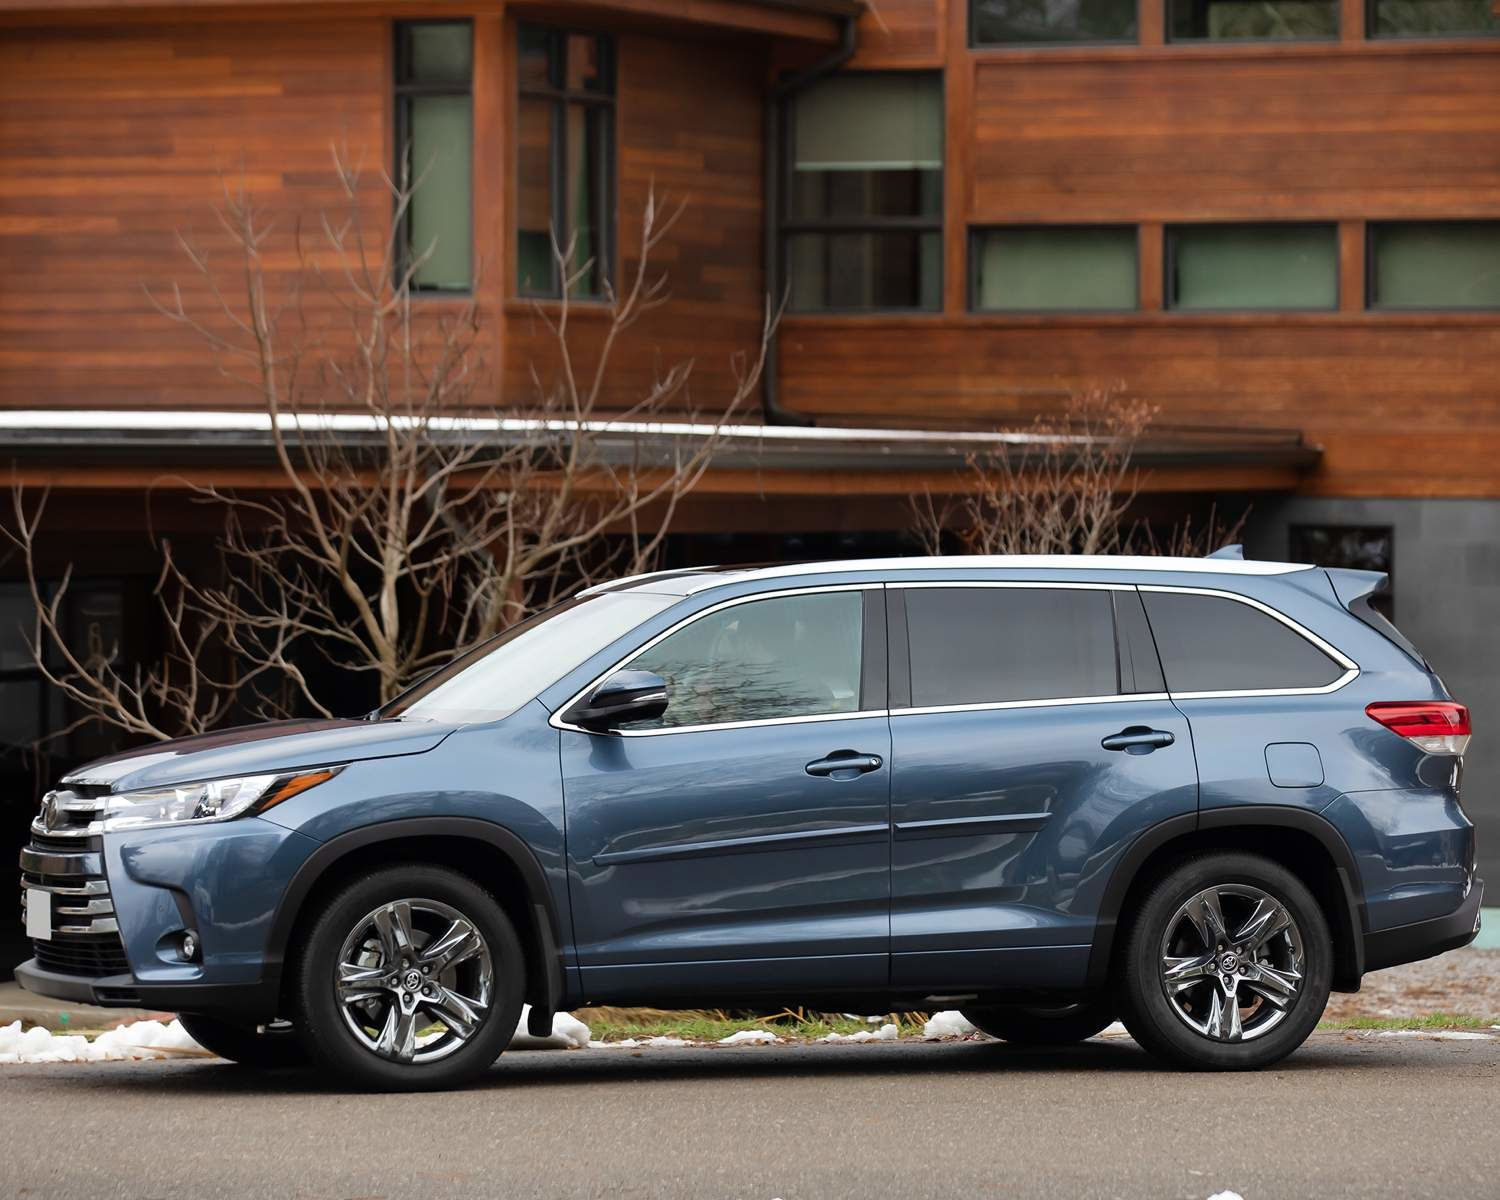 Highlander Limited AWD shown in Shoreline Blue pearl